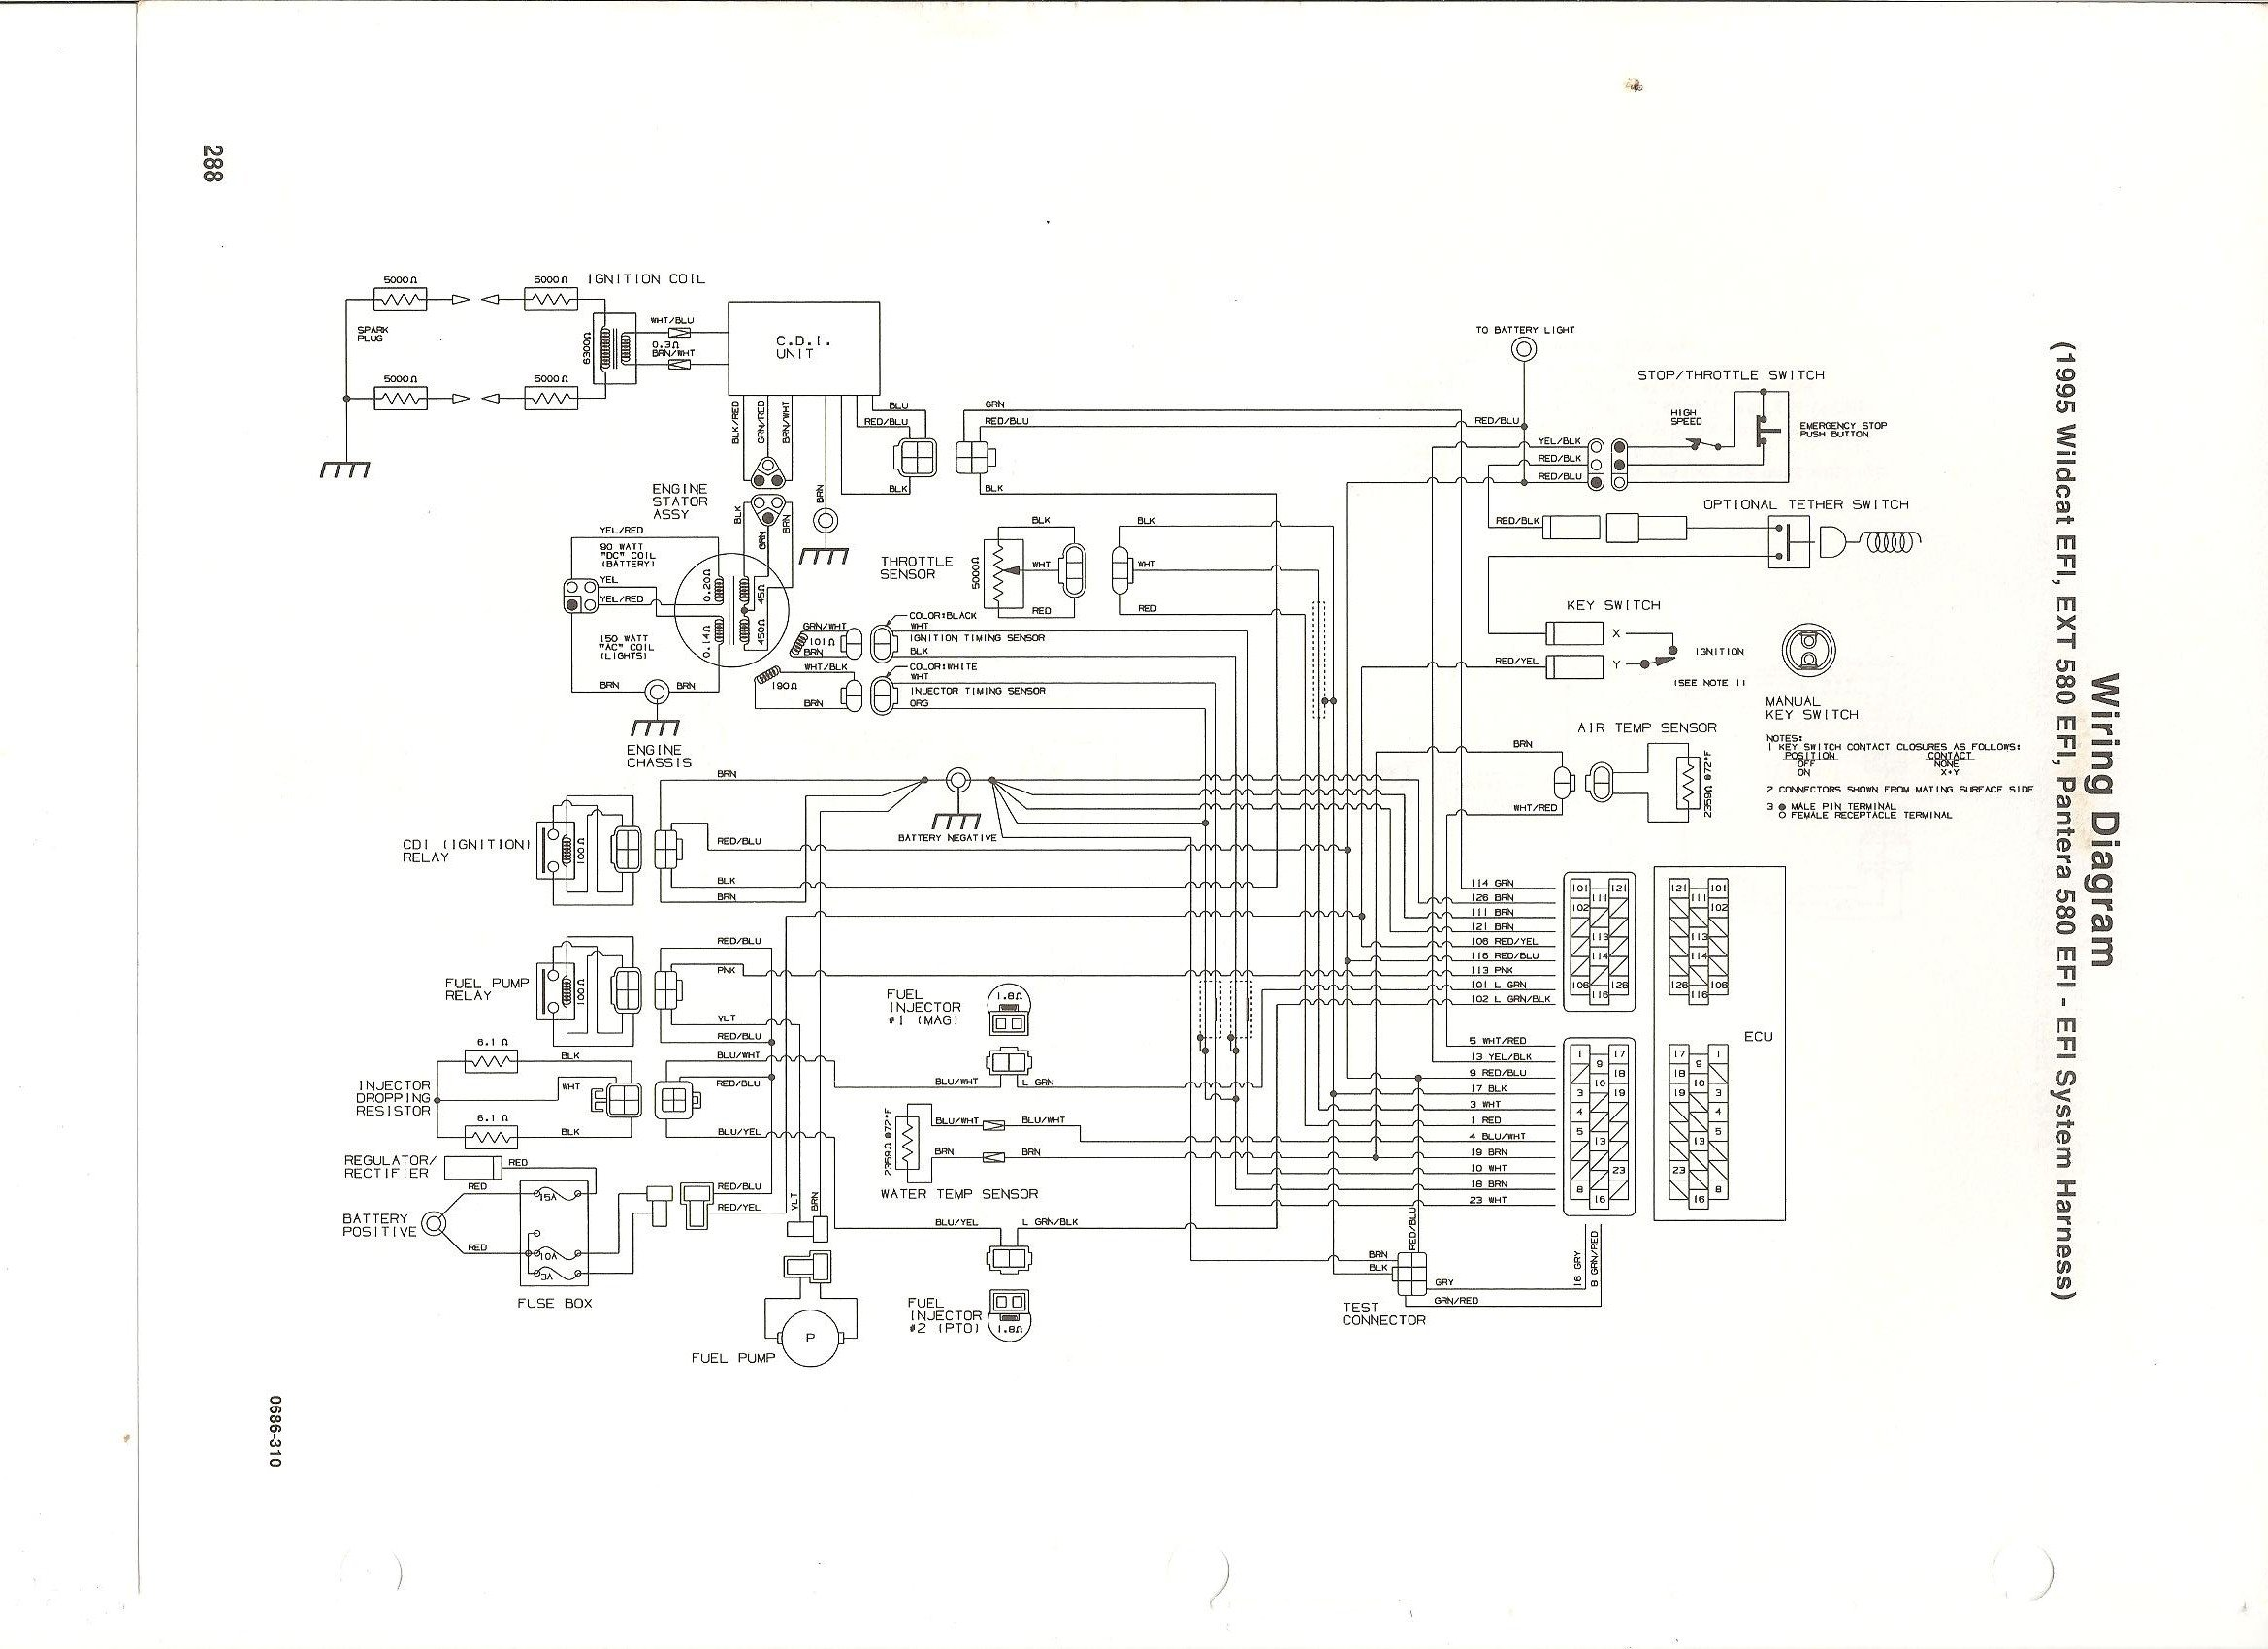 Wiring Diagram Polaris Sportsman 300